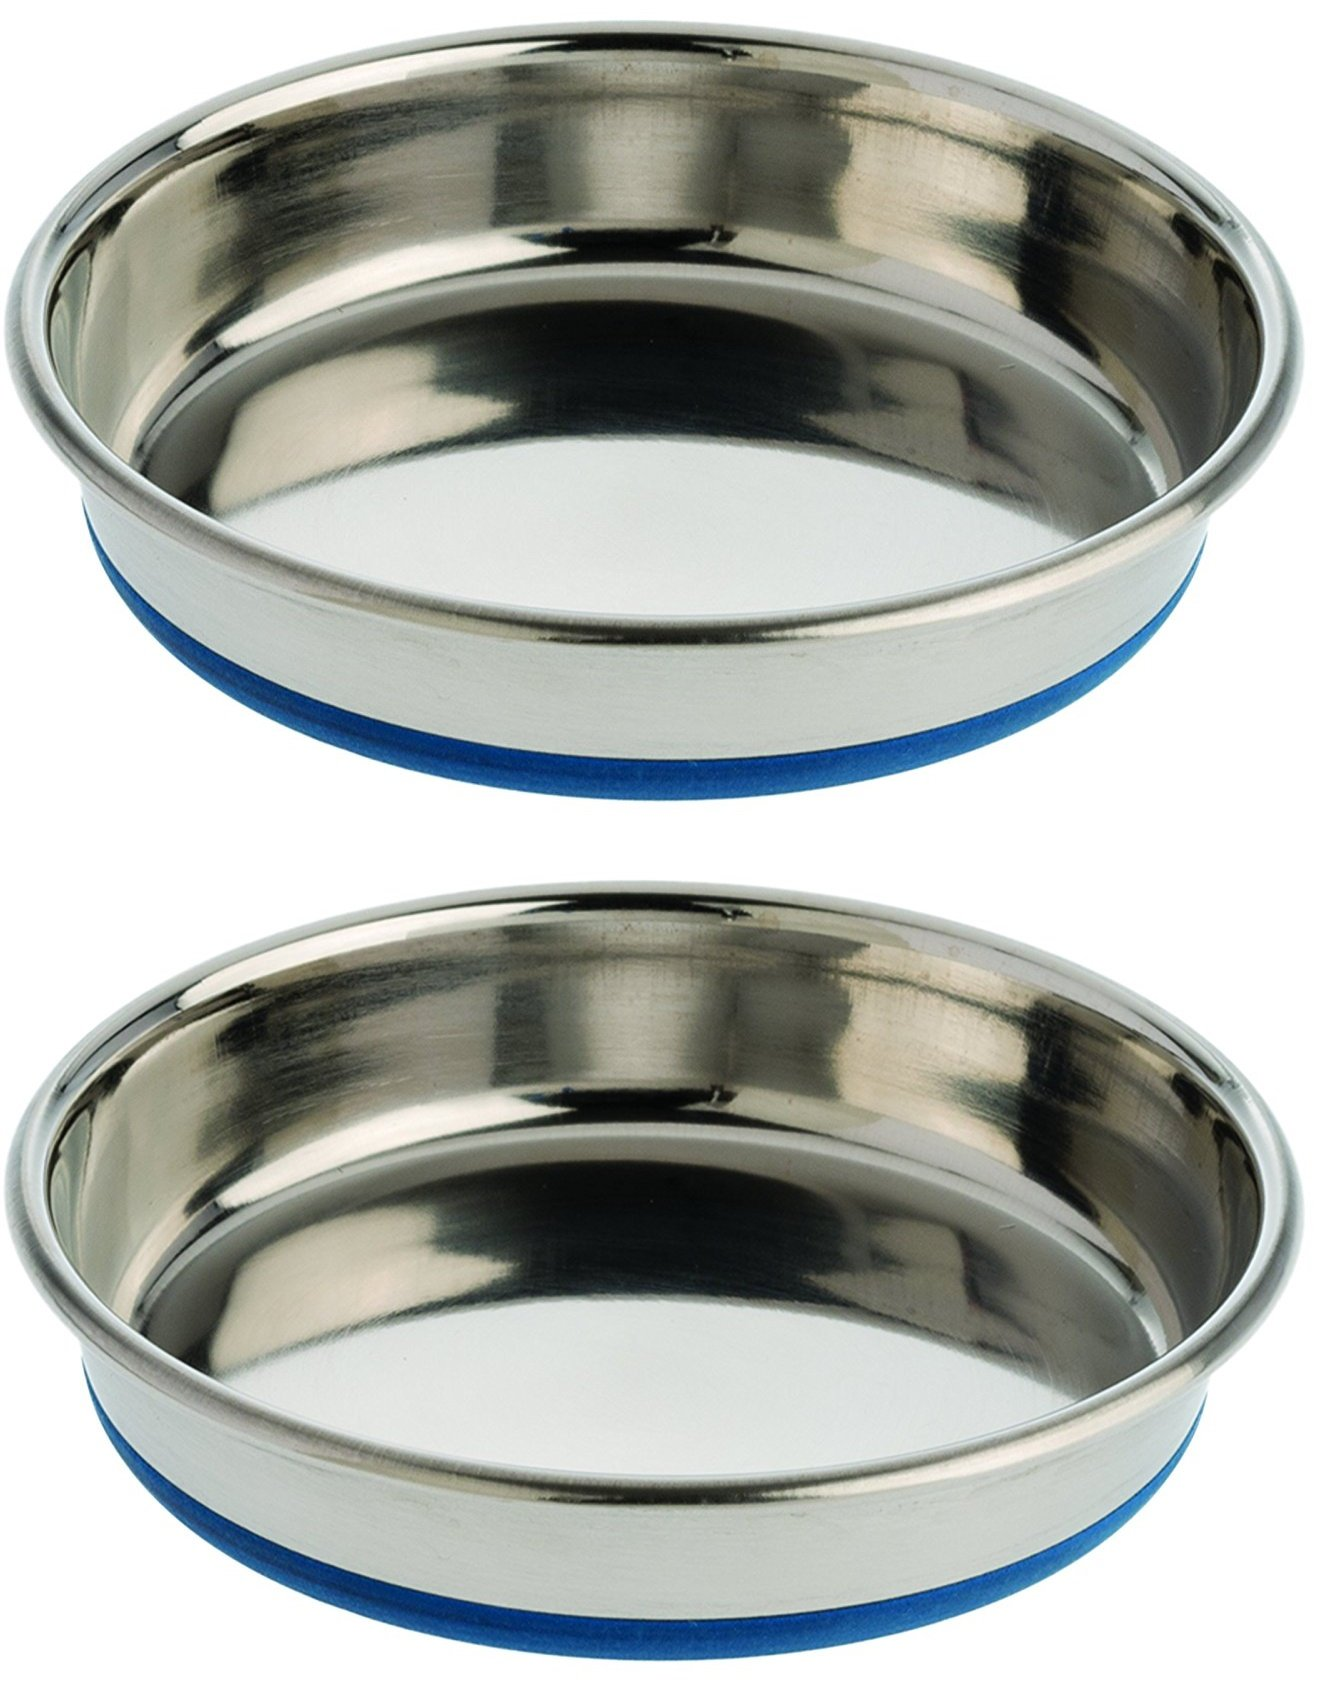 (2 Pack) OurPets Durapet Bowl Cat Dishes, 12 Ounce each